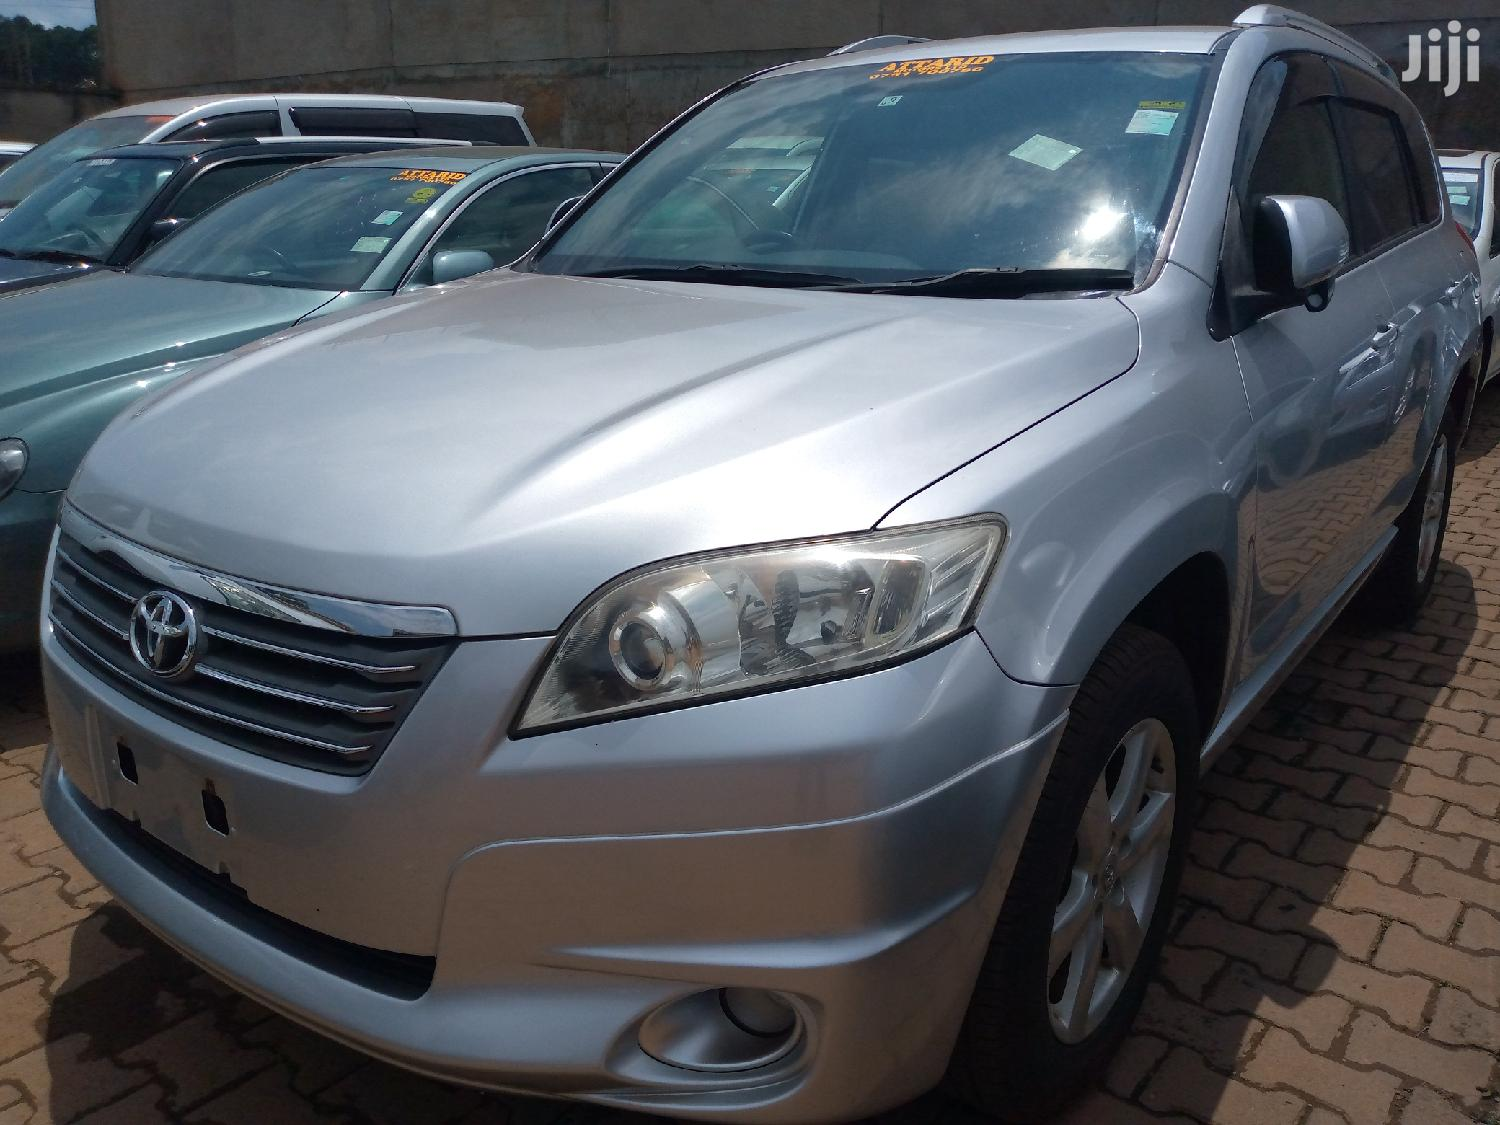 Toyota Vanguard 2008 Silver | Cars for sale in Kampala, Central Region, Uganda